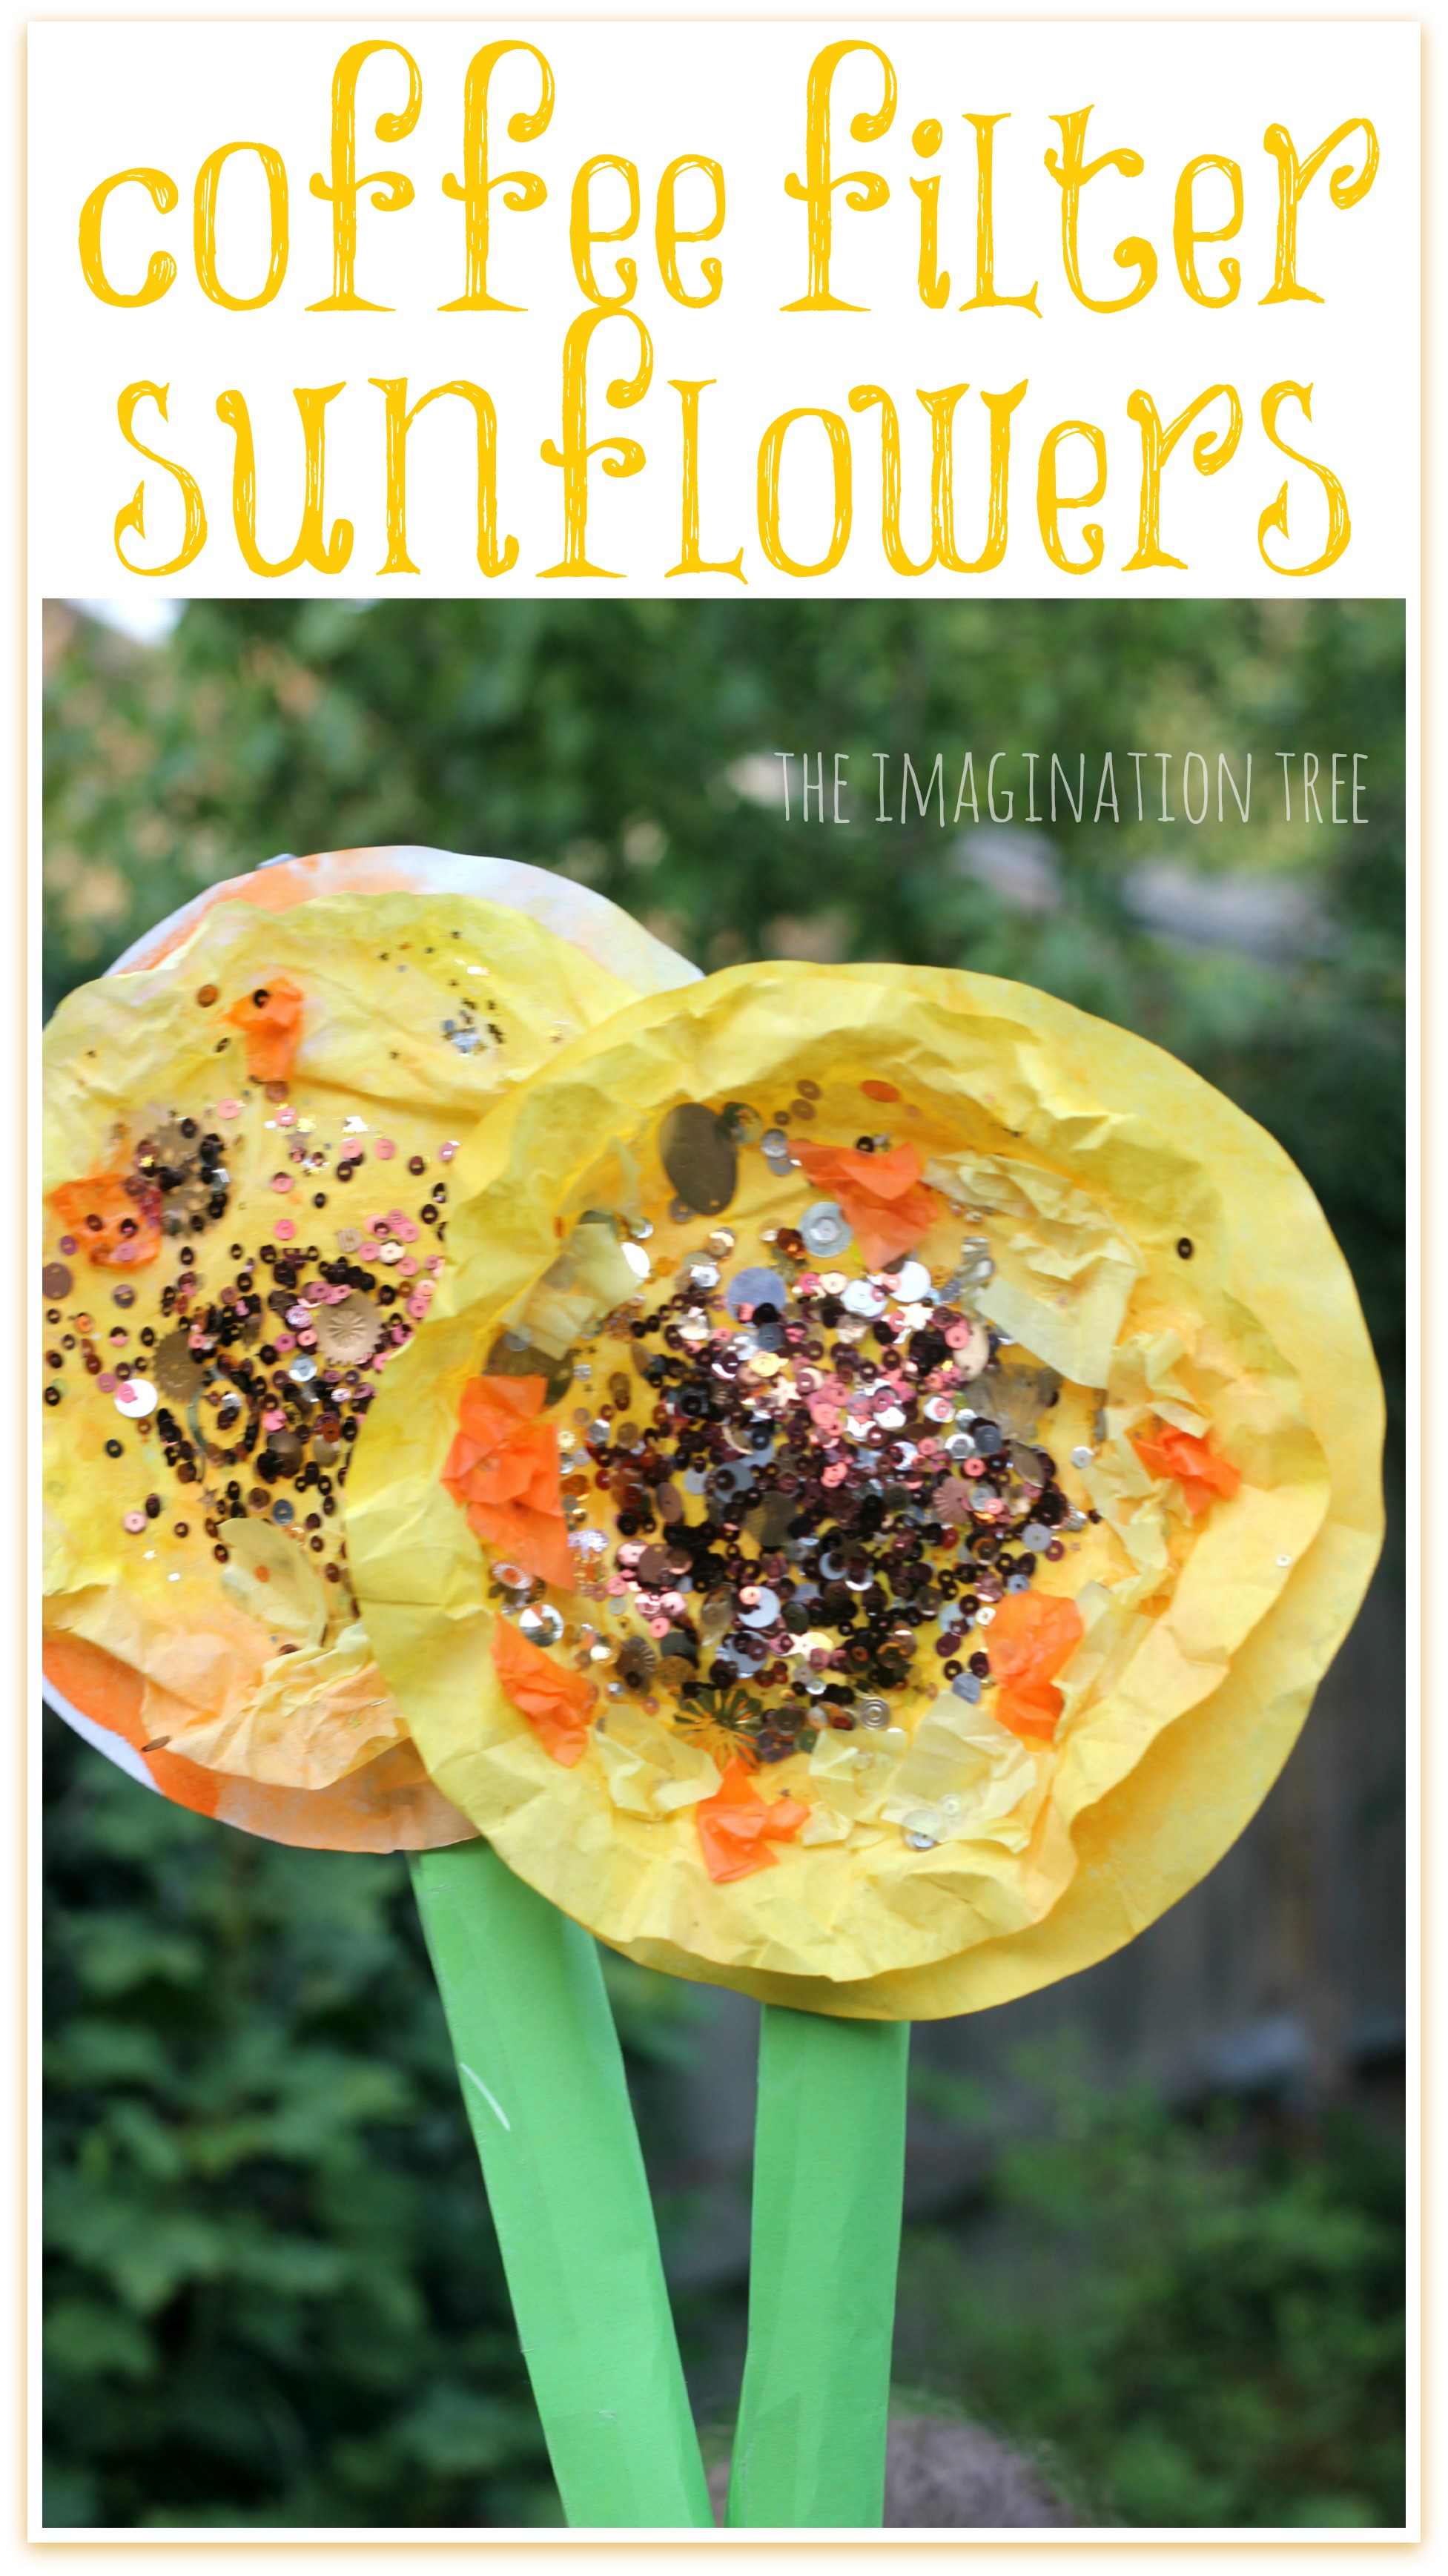 Coffee Filter Sunflowers Collage The Imagination Tree